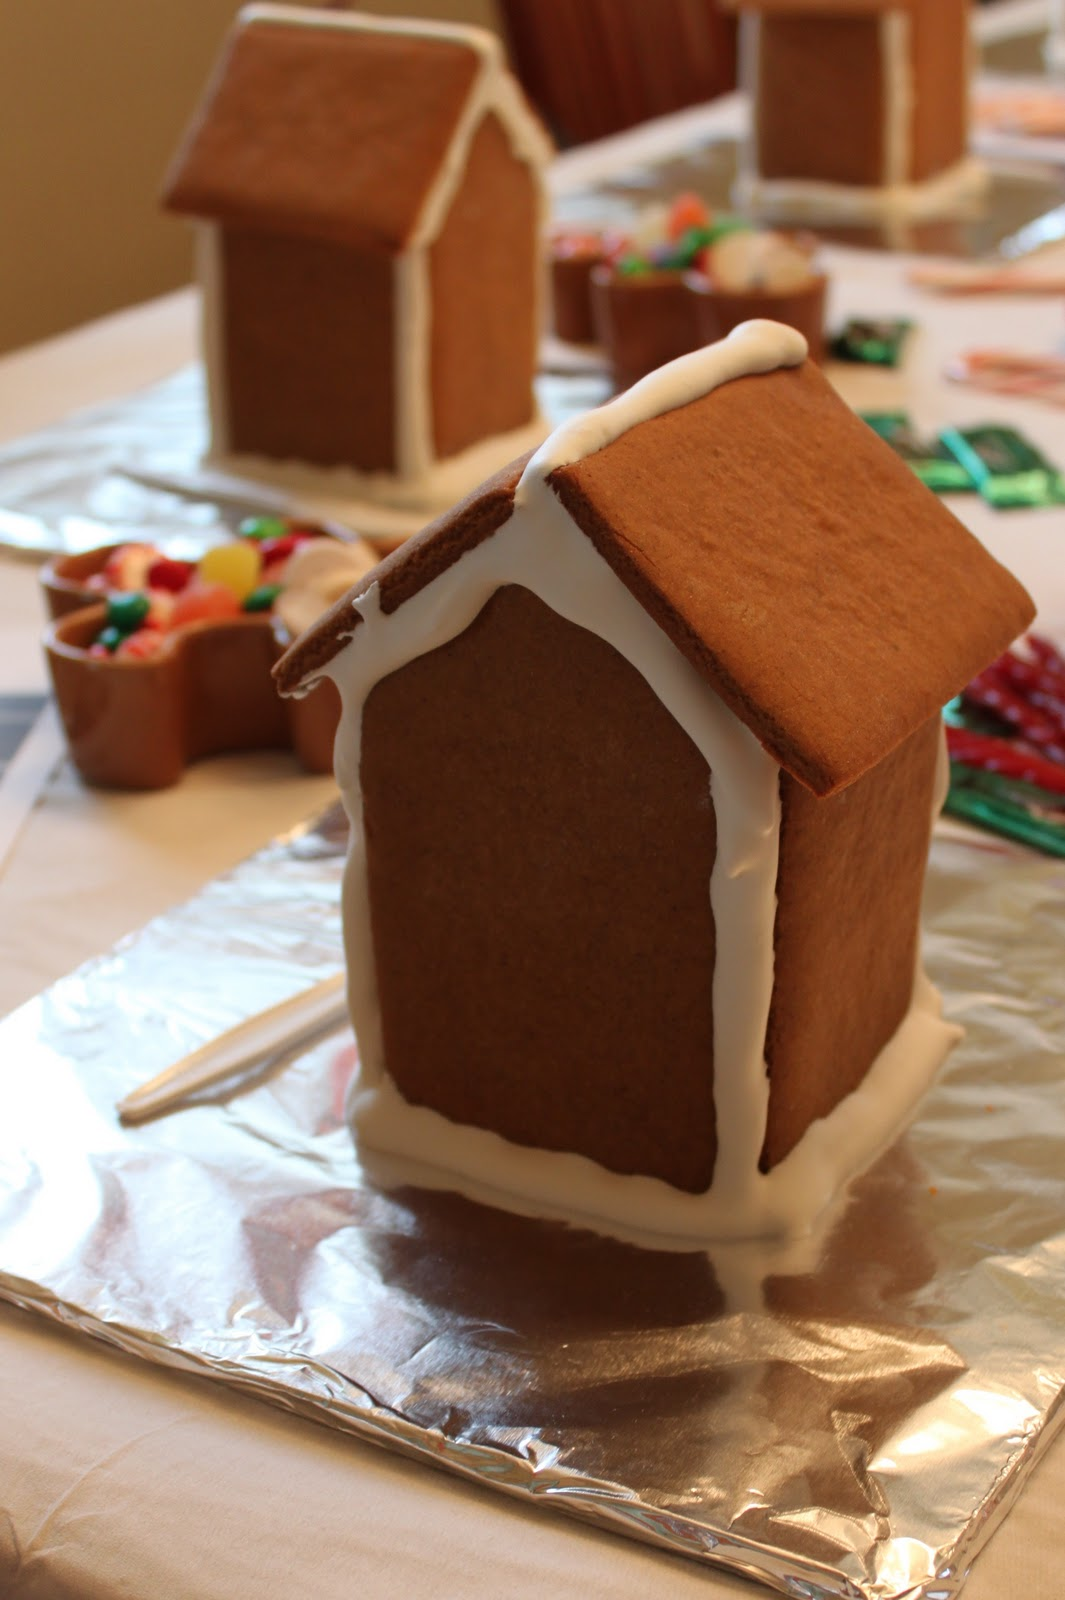 Houseography Holidayography Gingerbread Magic